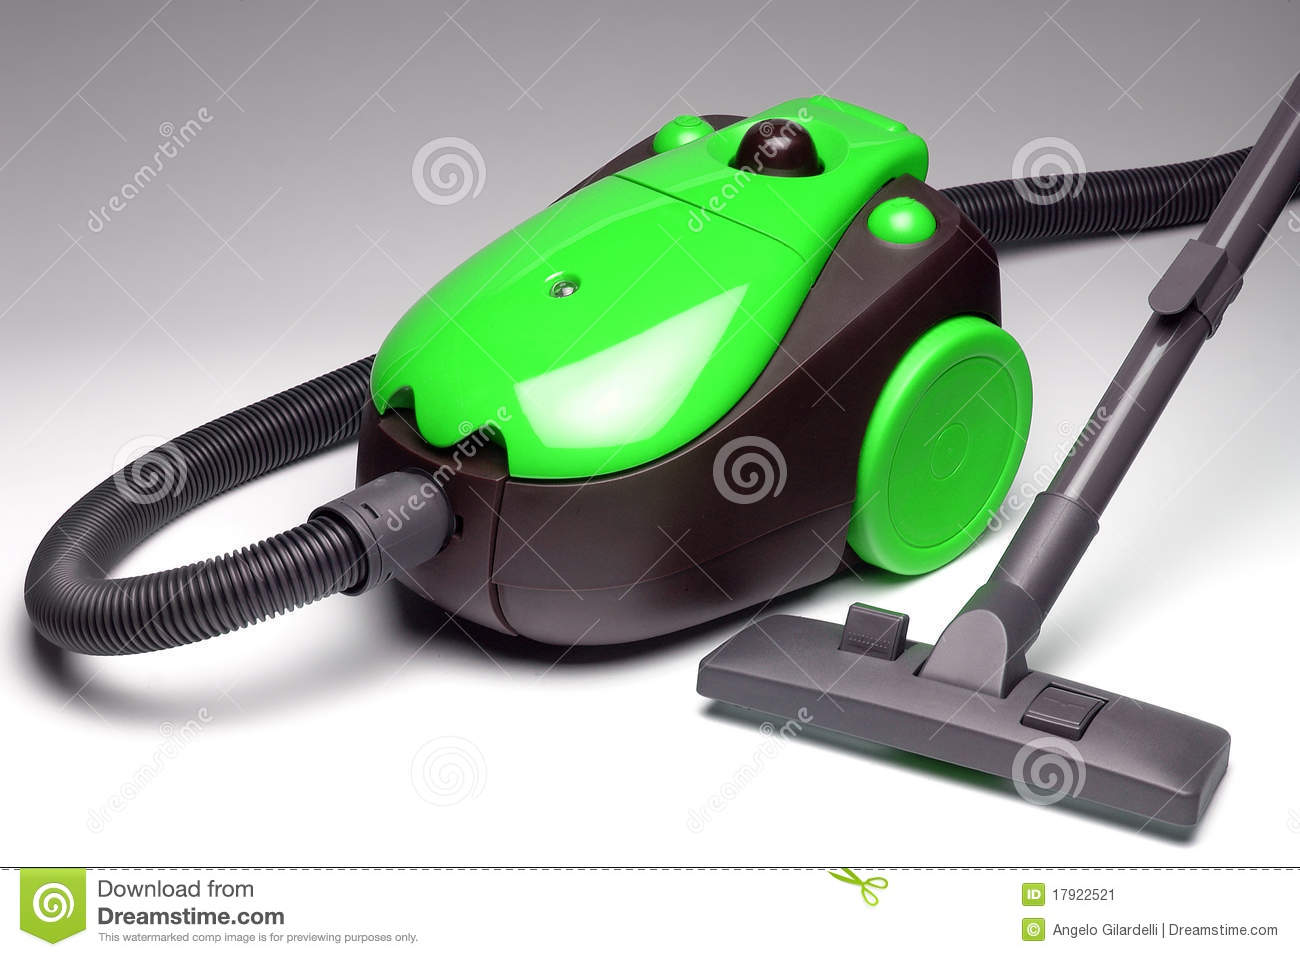 Mr Carpet Cleaner Images Size Together With